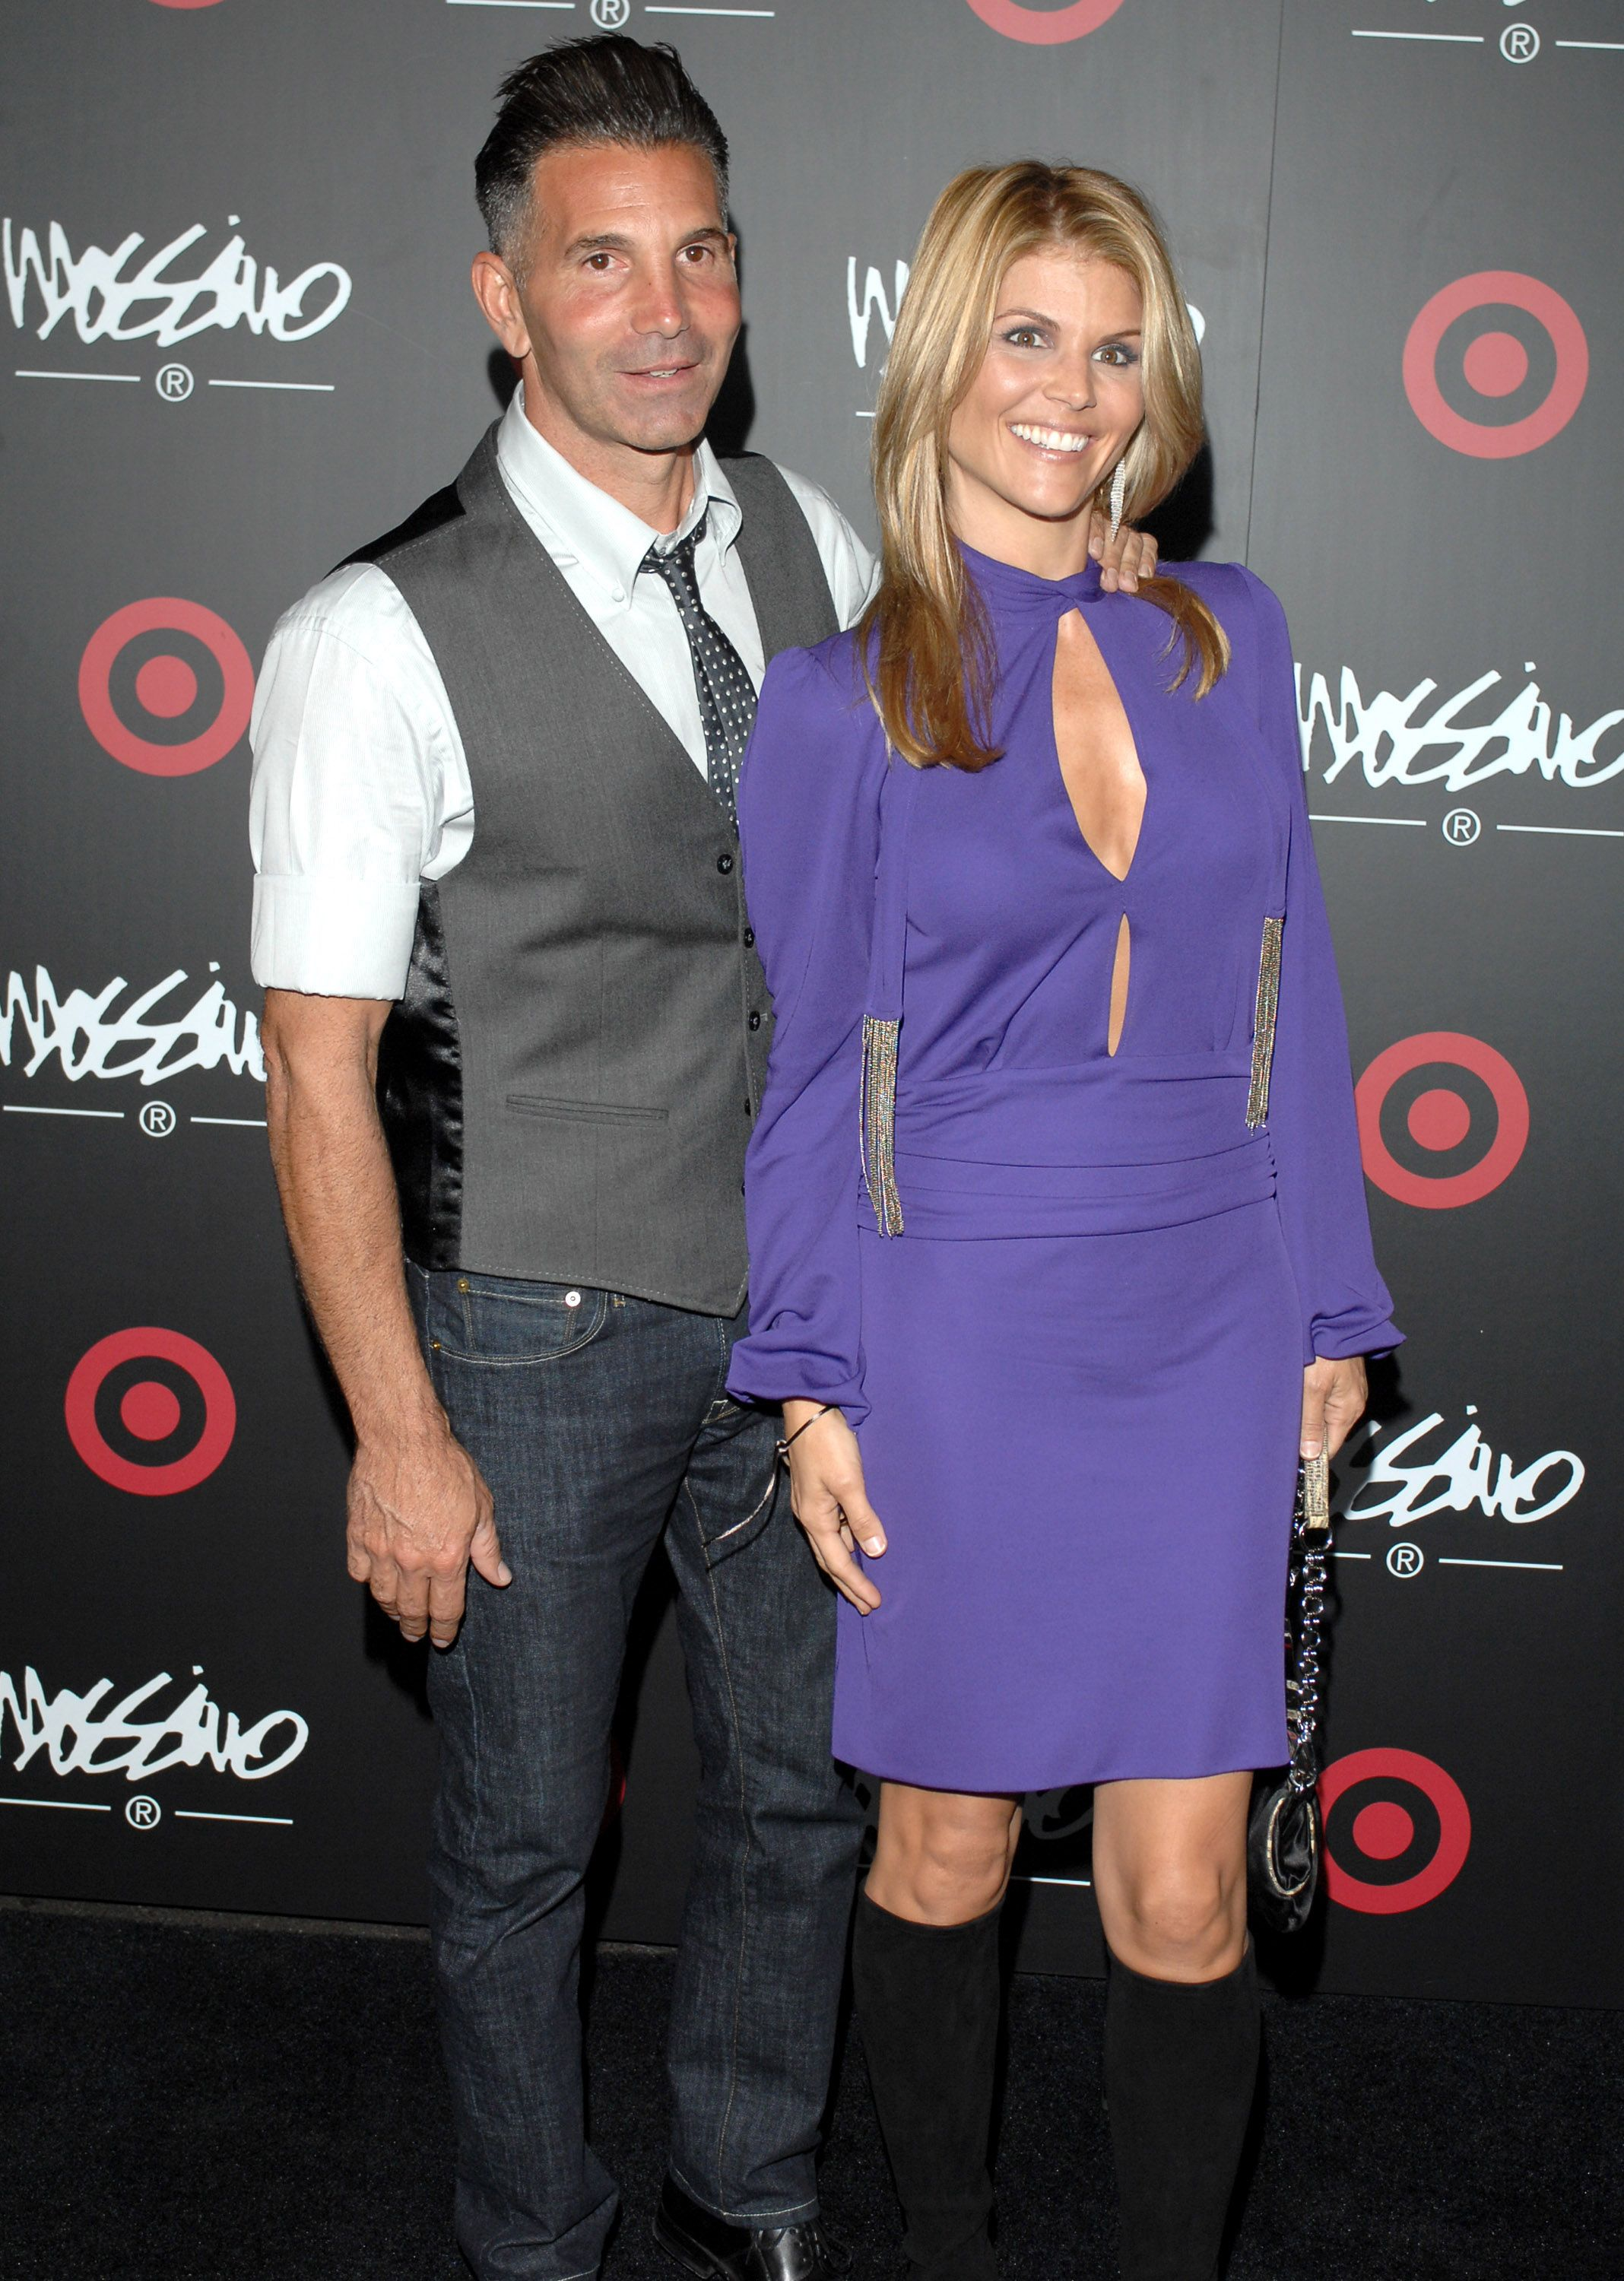 Mossimo Giannulli and Lori Loughlin at the Target Hosts LA Fashion Week Party for Giannulli on October 19, 2006 | Photo: Getty Images